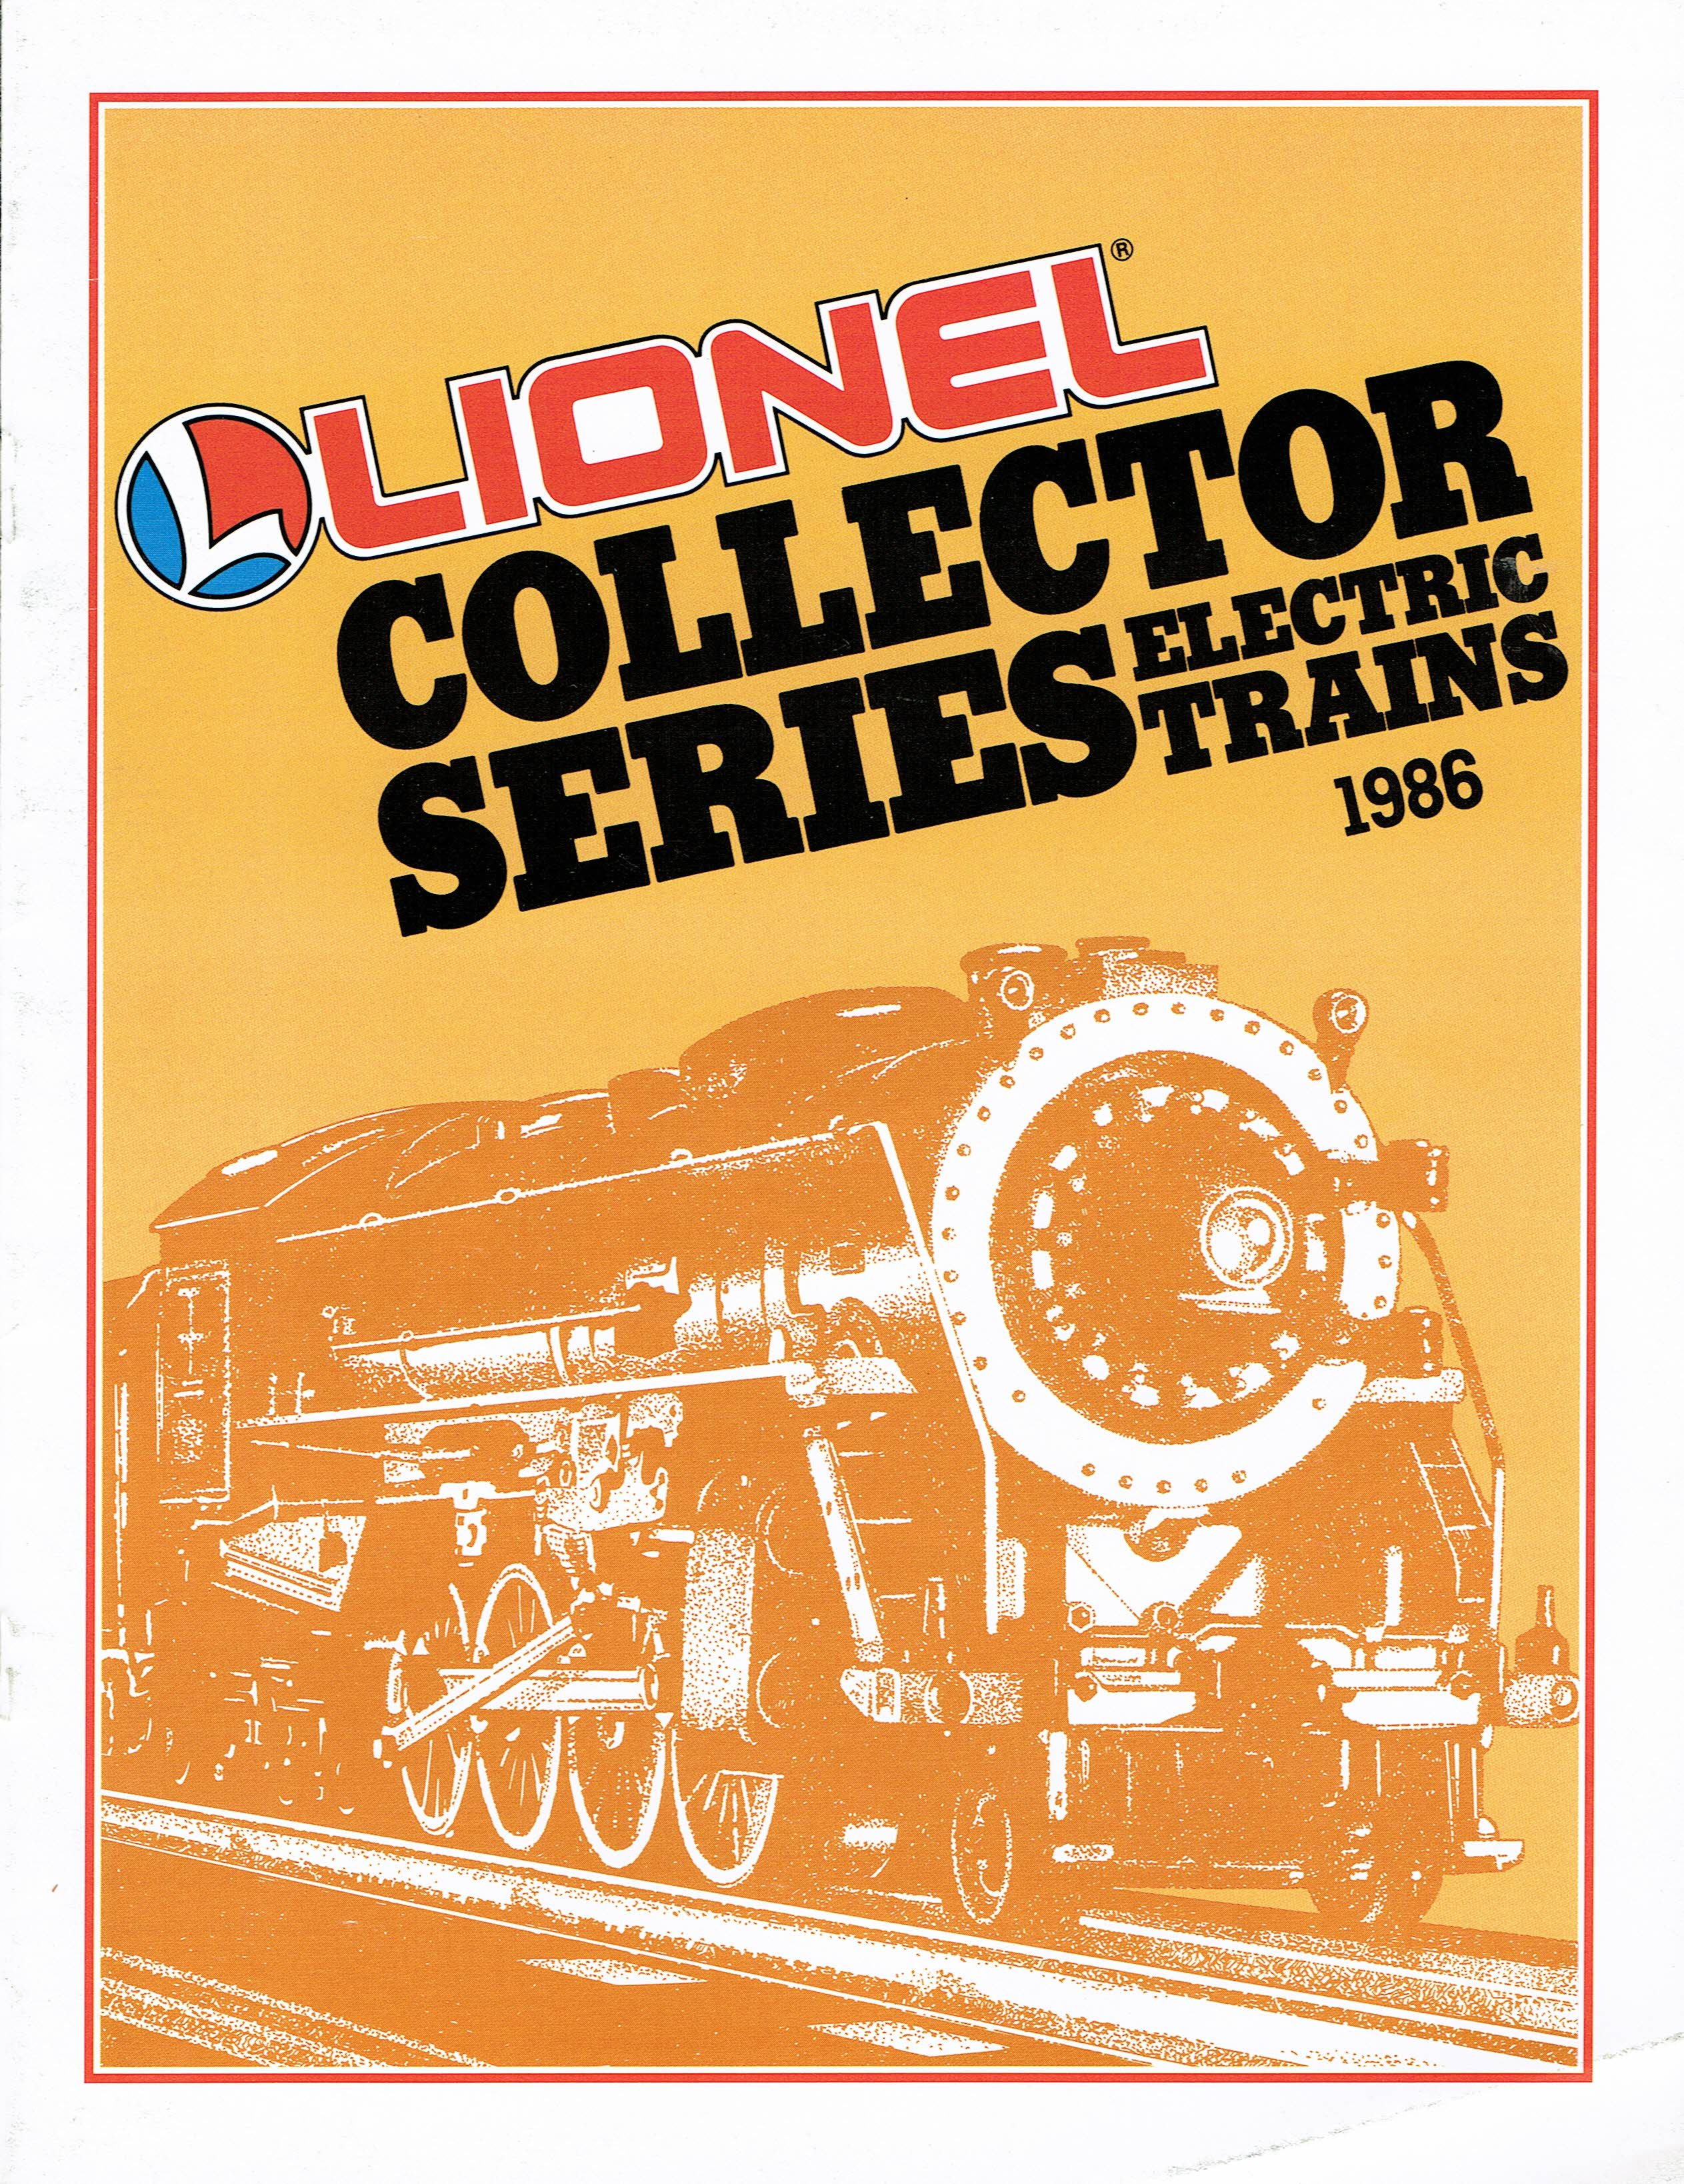 Lionel 1986 Collector Series Catalog image